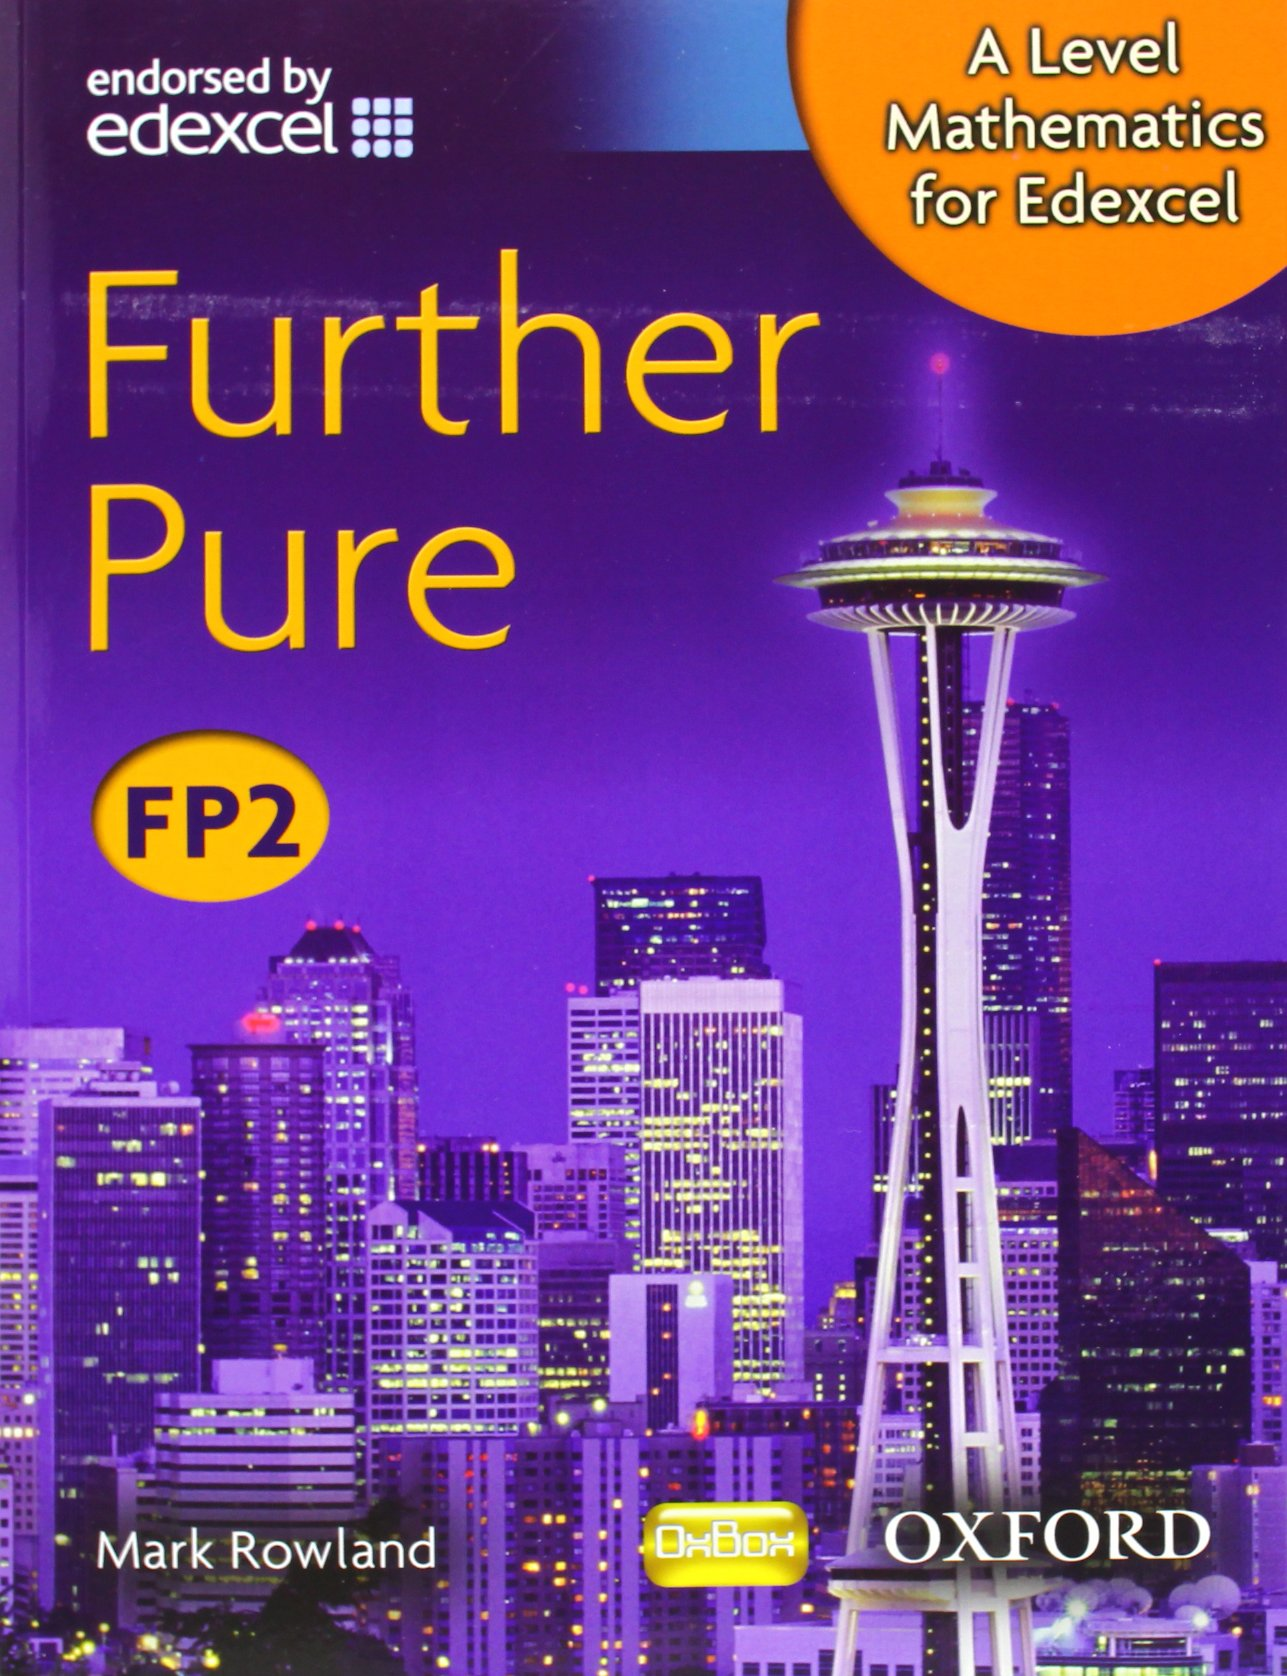 A level mathematics for edexcel further pure fp2 amazon a level mathematics for edexcel further pure fp2 amazon mark rowland 9780199117888 books fandeluxe Images